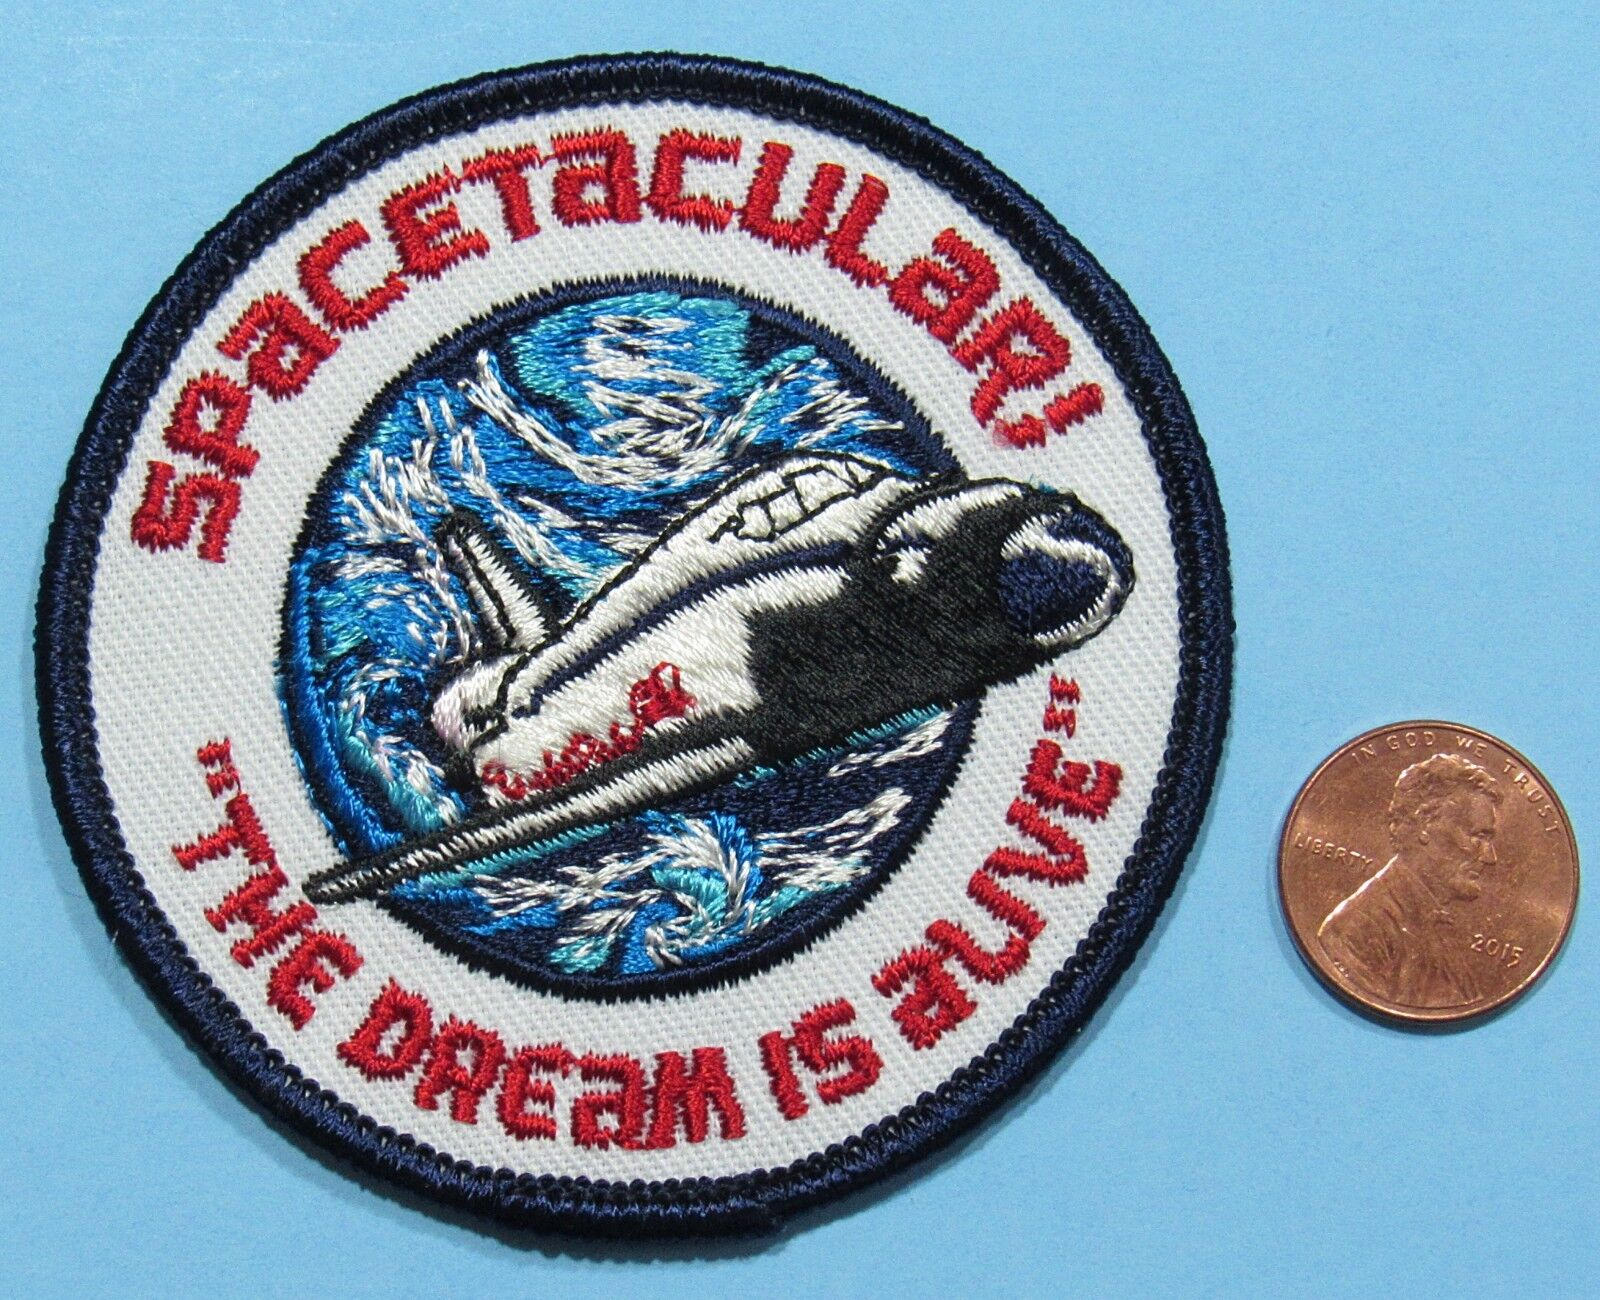 nasa patches for sale - HD1600×1300